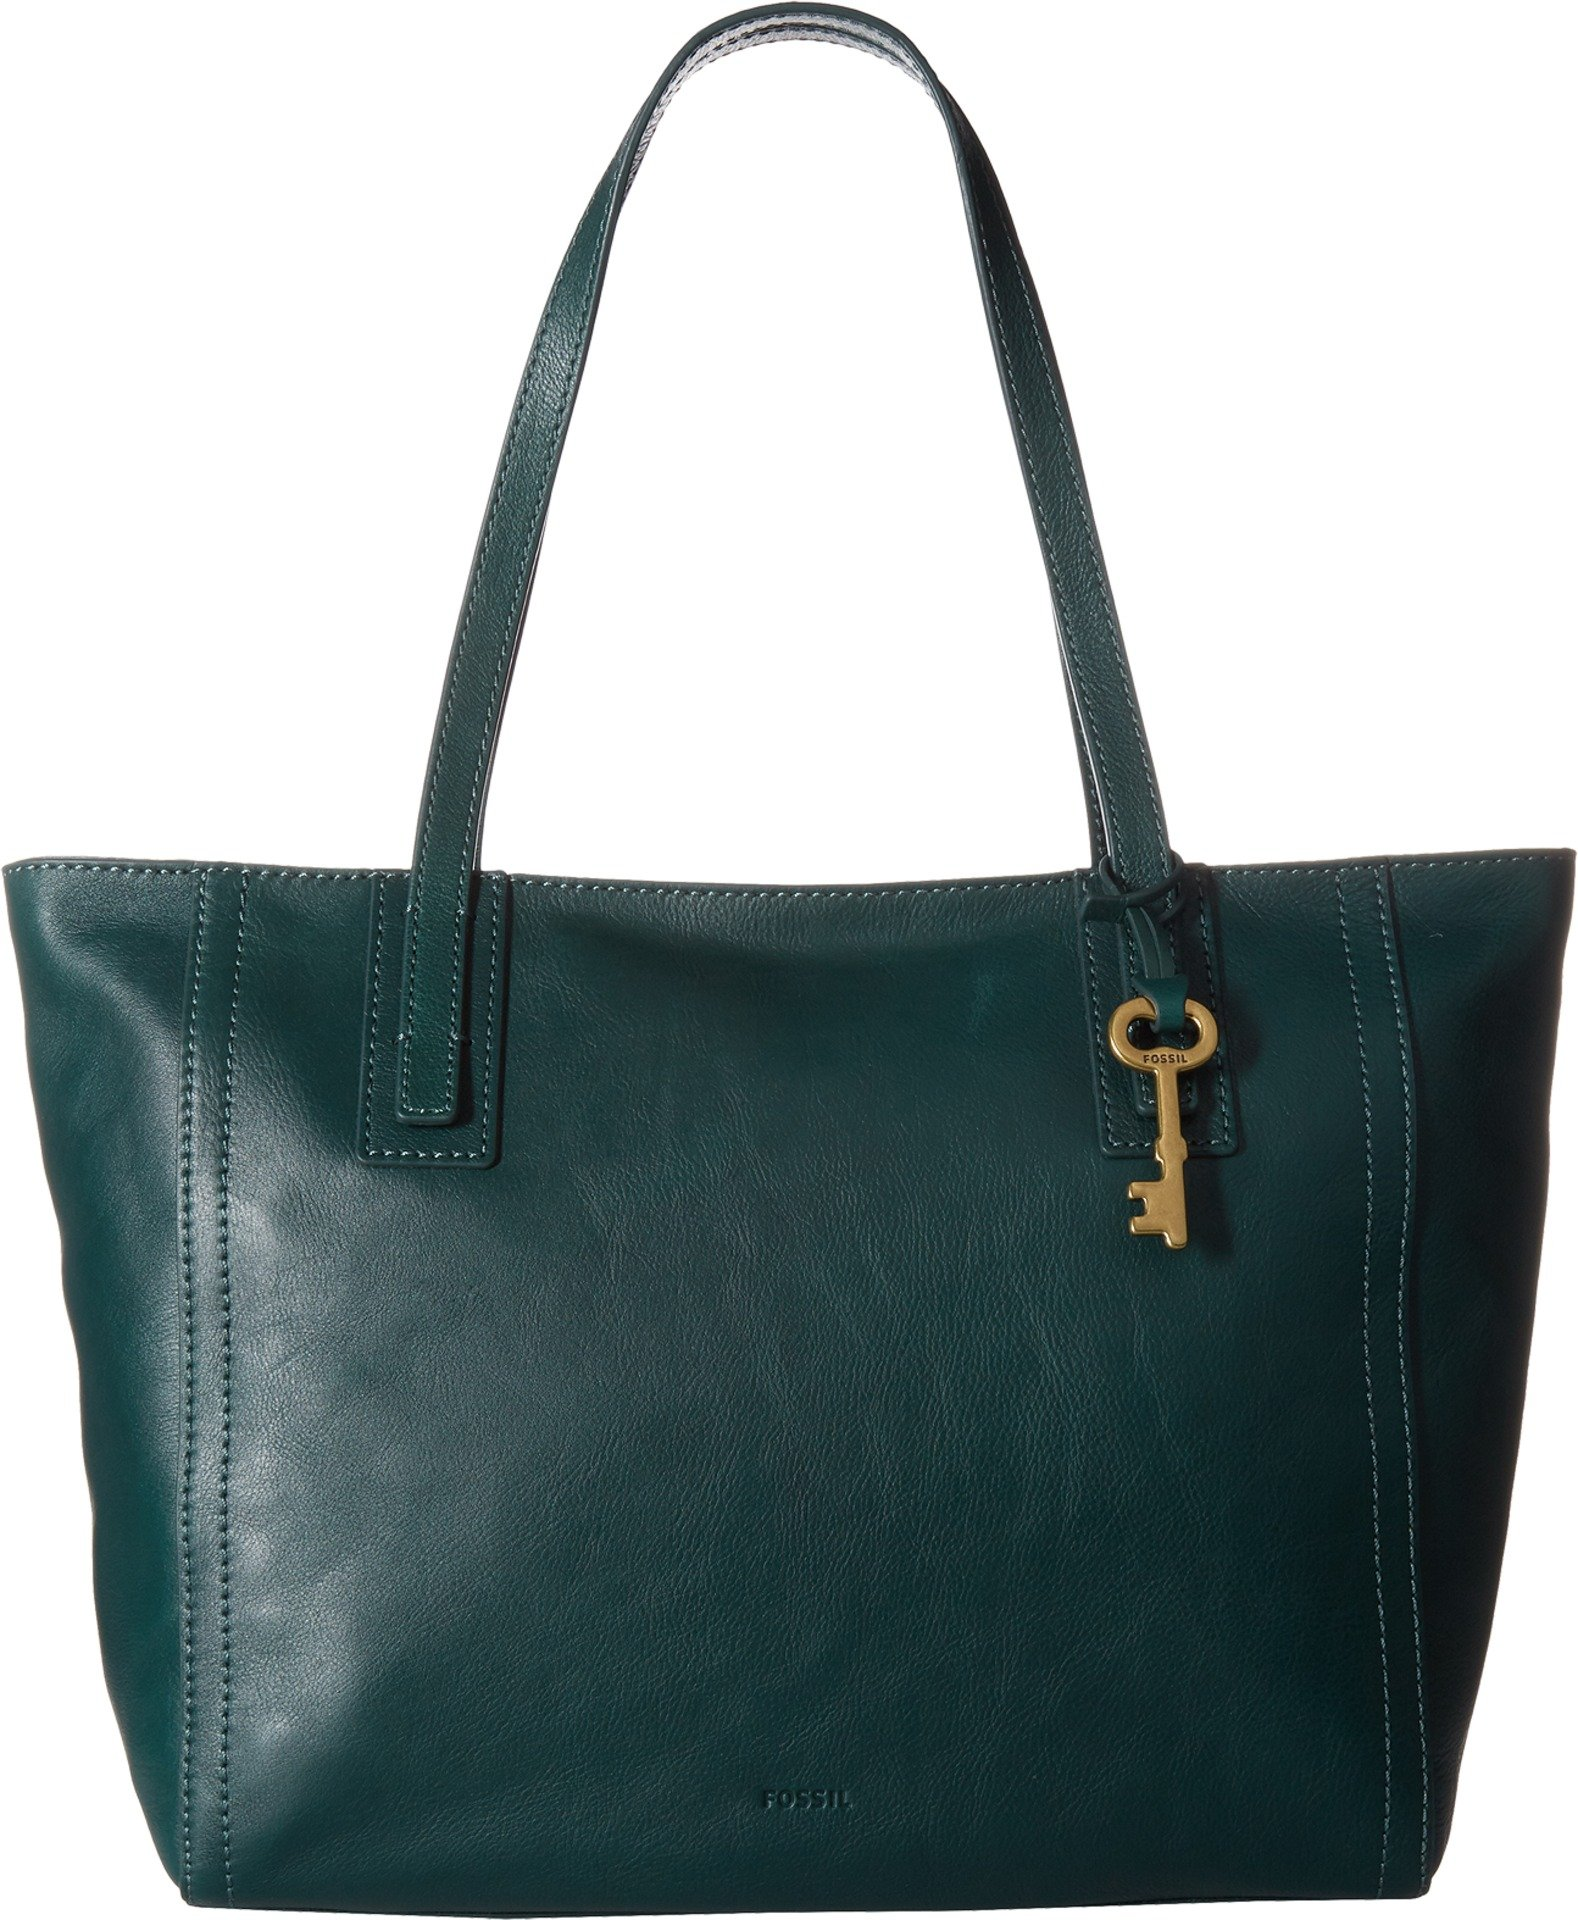 Fossil ZB6844307, Alpine Green by Fossil